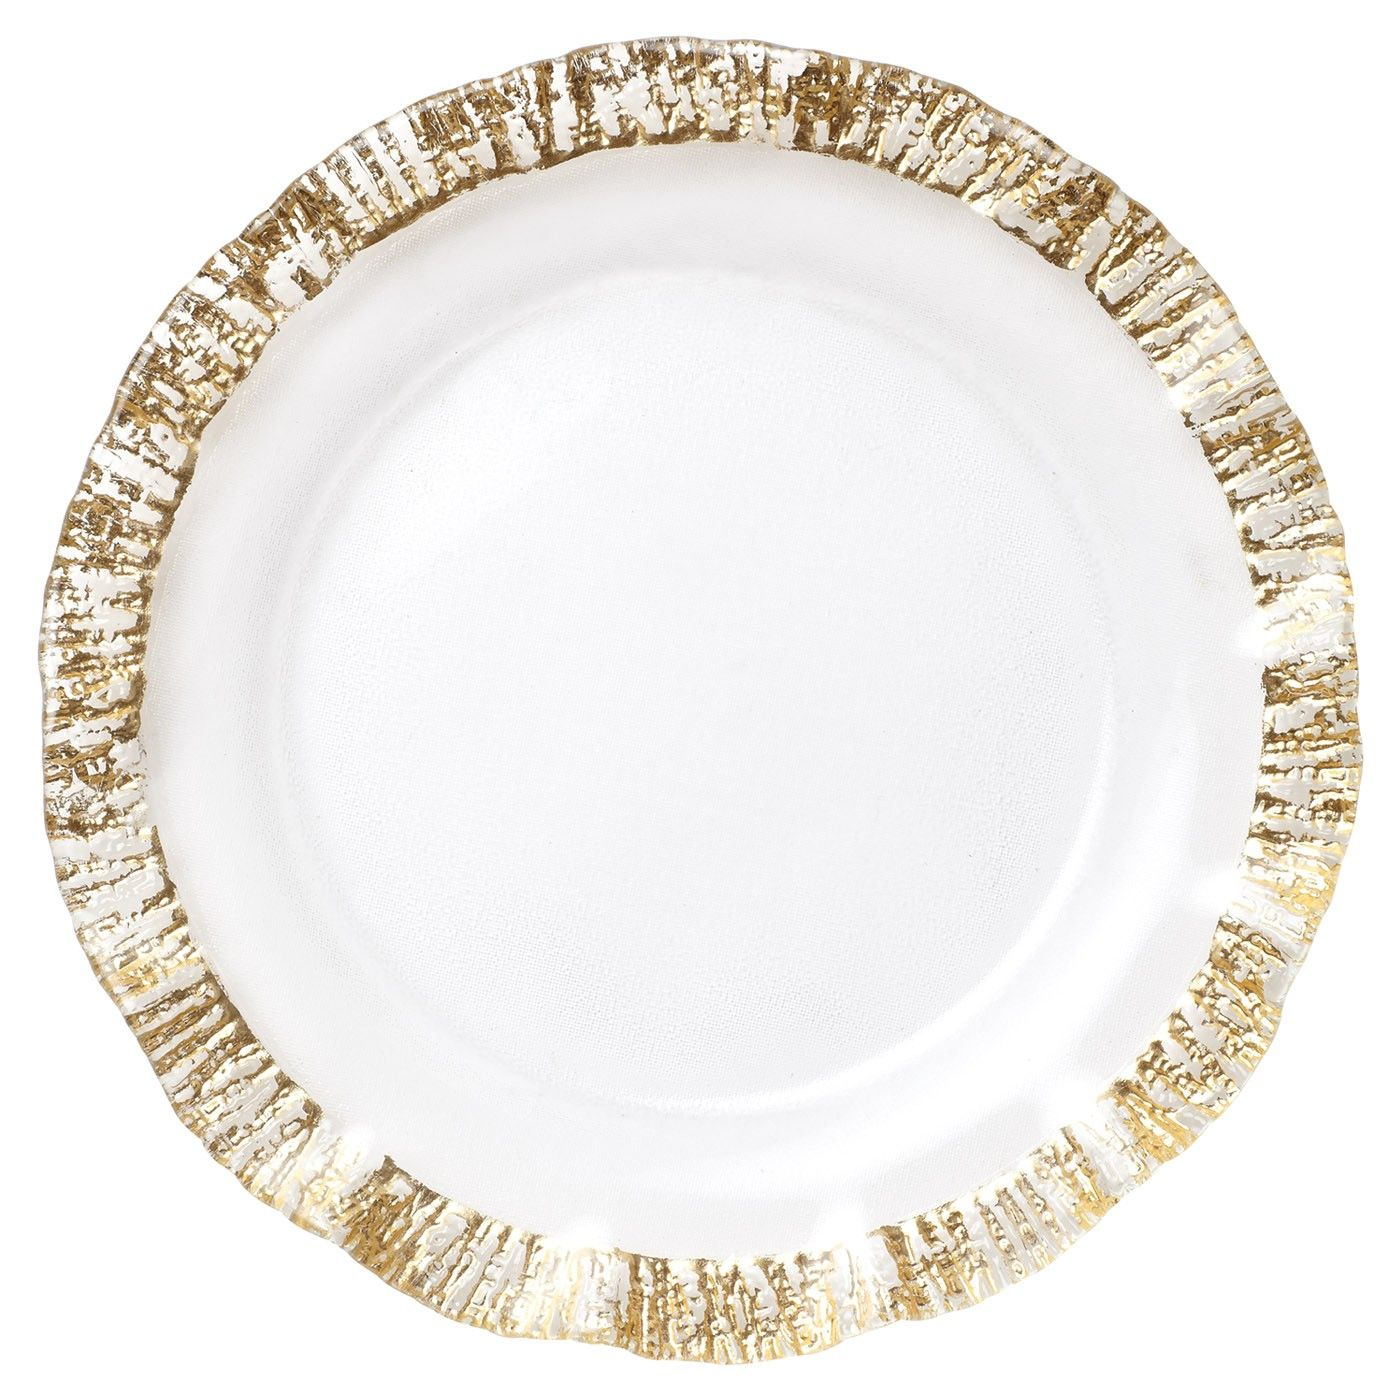 Rufolo Glass Gold Service Plate/Charger  sc 1 st  Pinterest & Rufolo Glass Gold Service Plate/Charger   Plate chargers Dinnerware ...